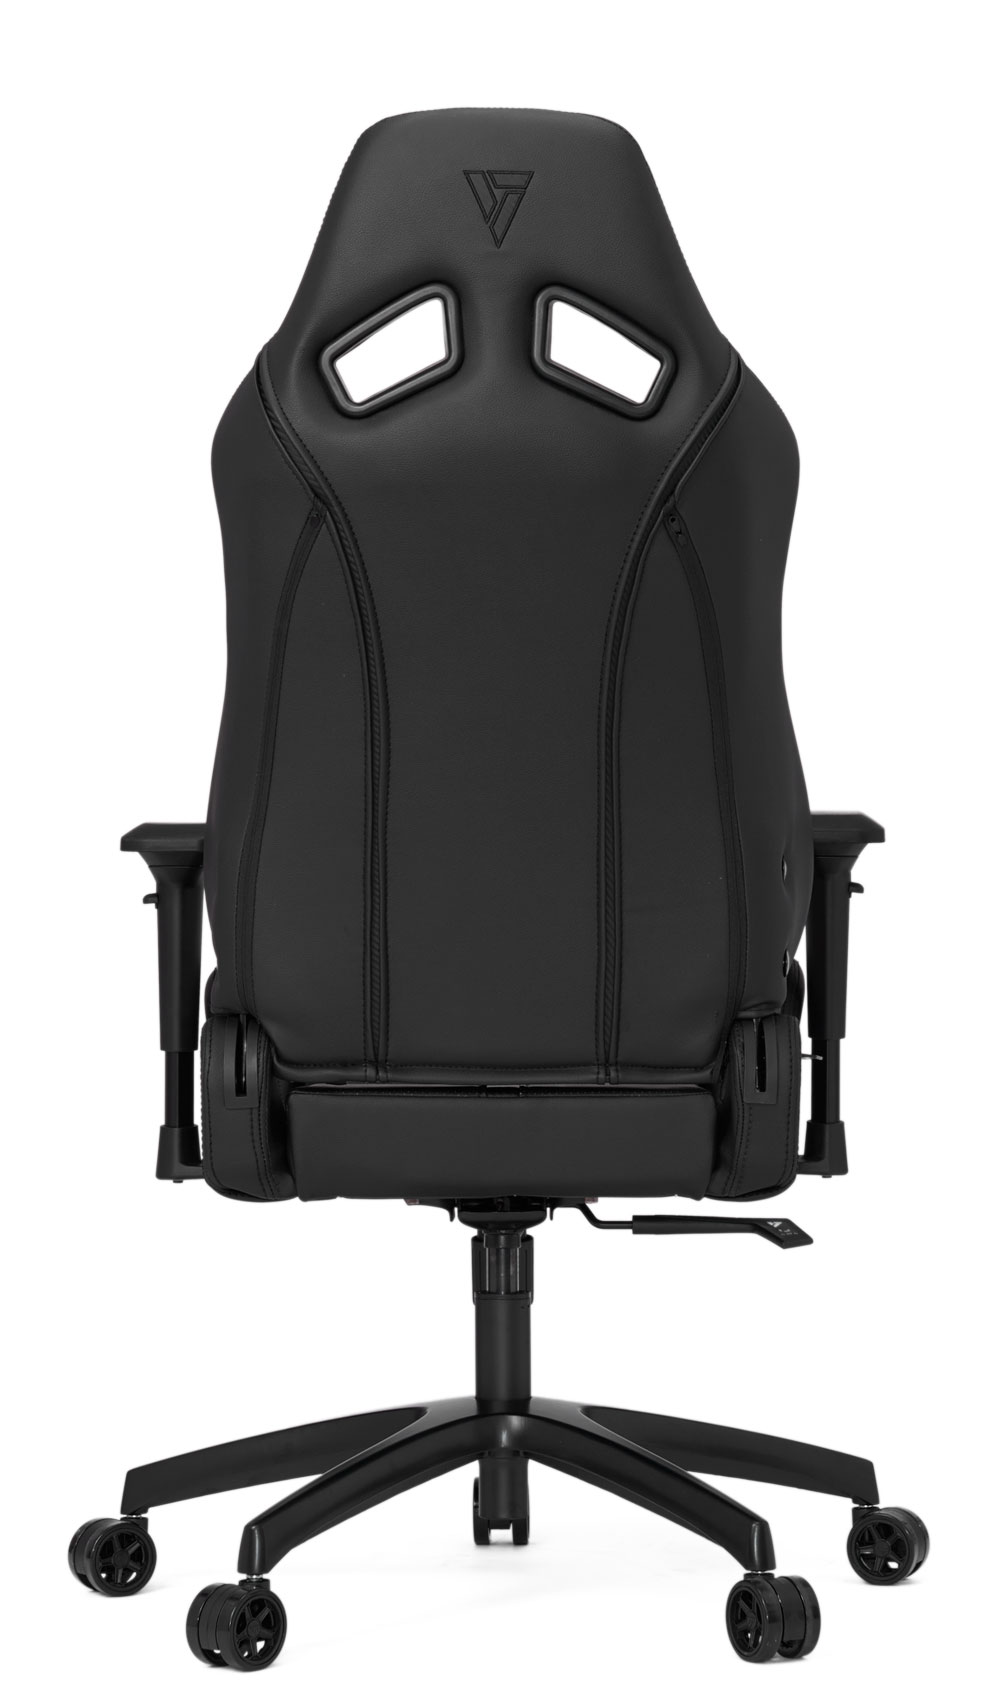 Vertagear SL5000 Gaming Chair Black / Carbon